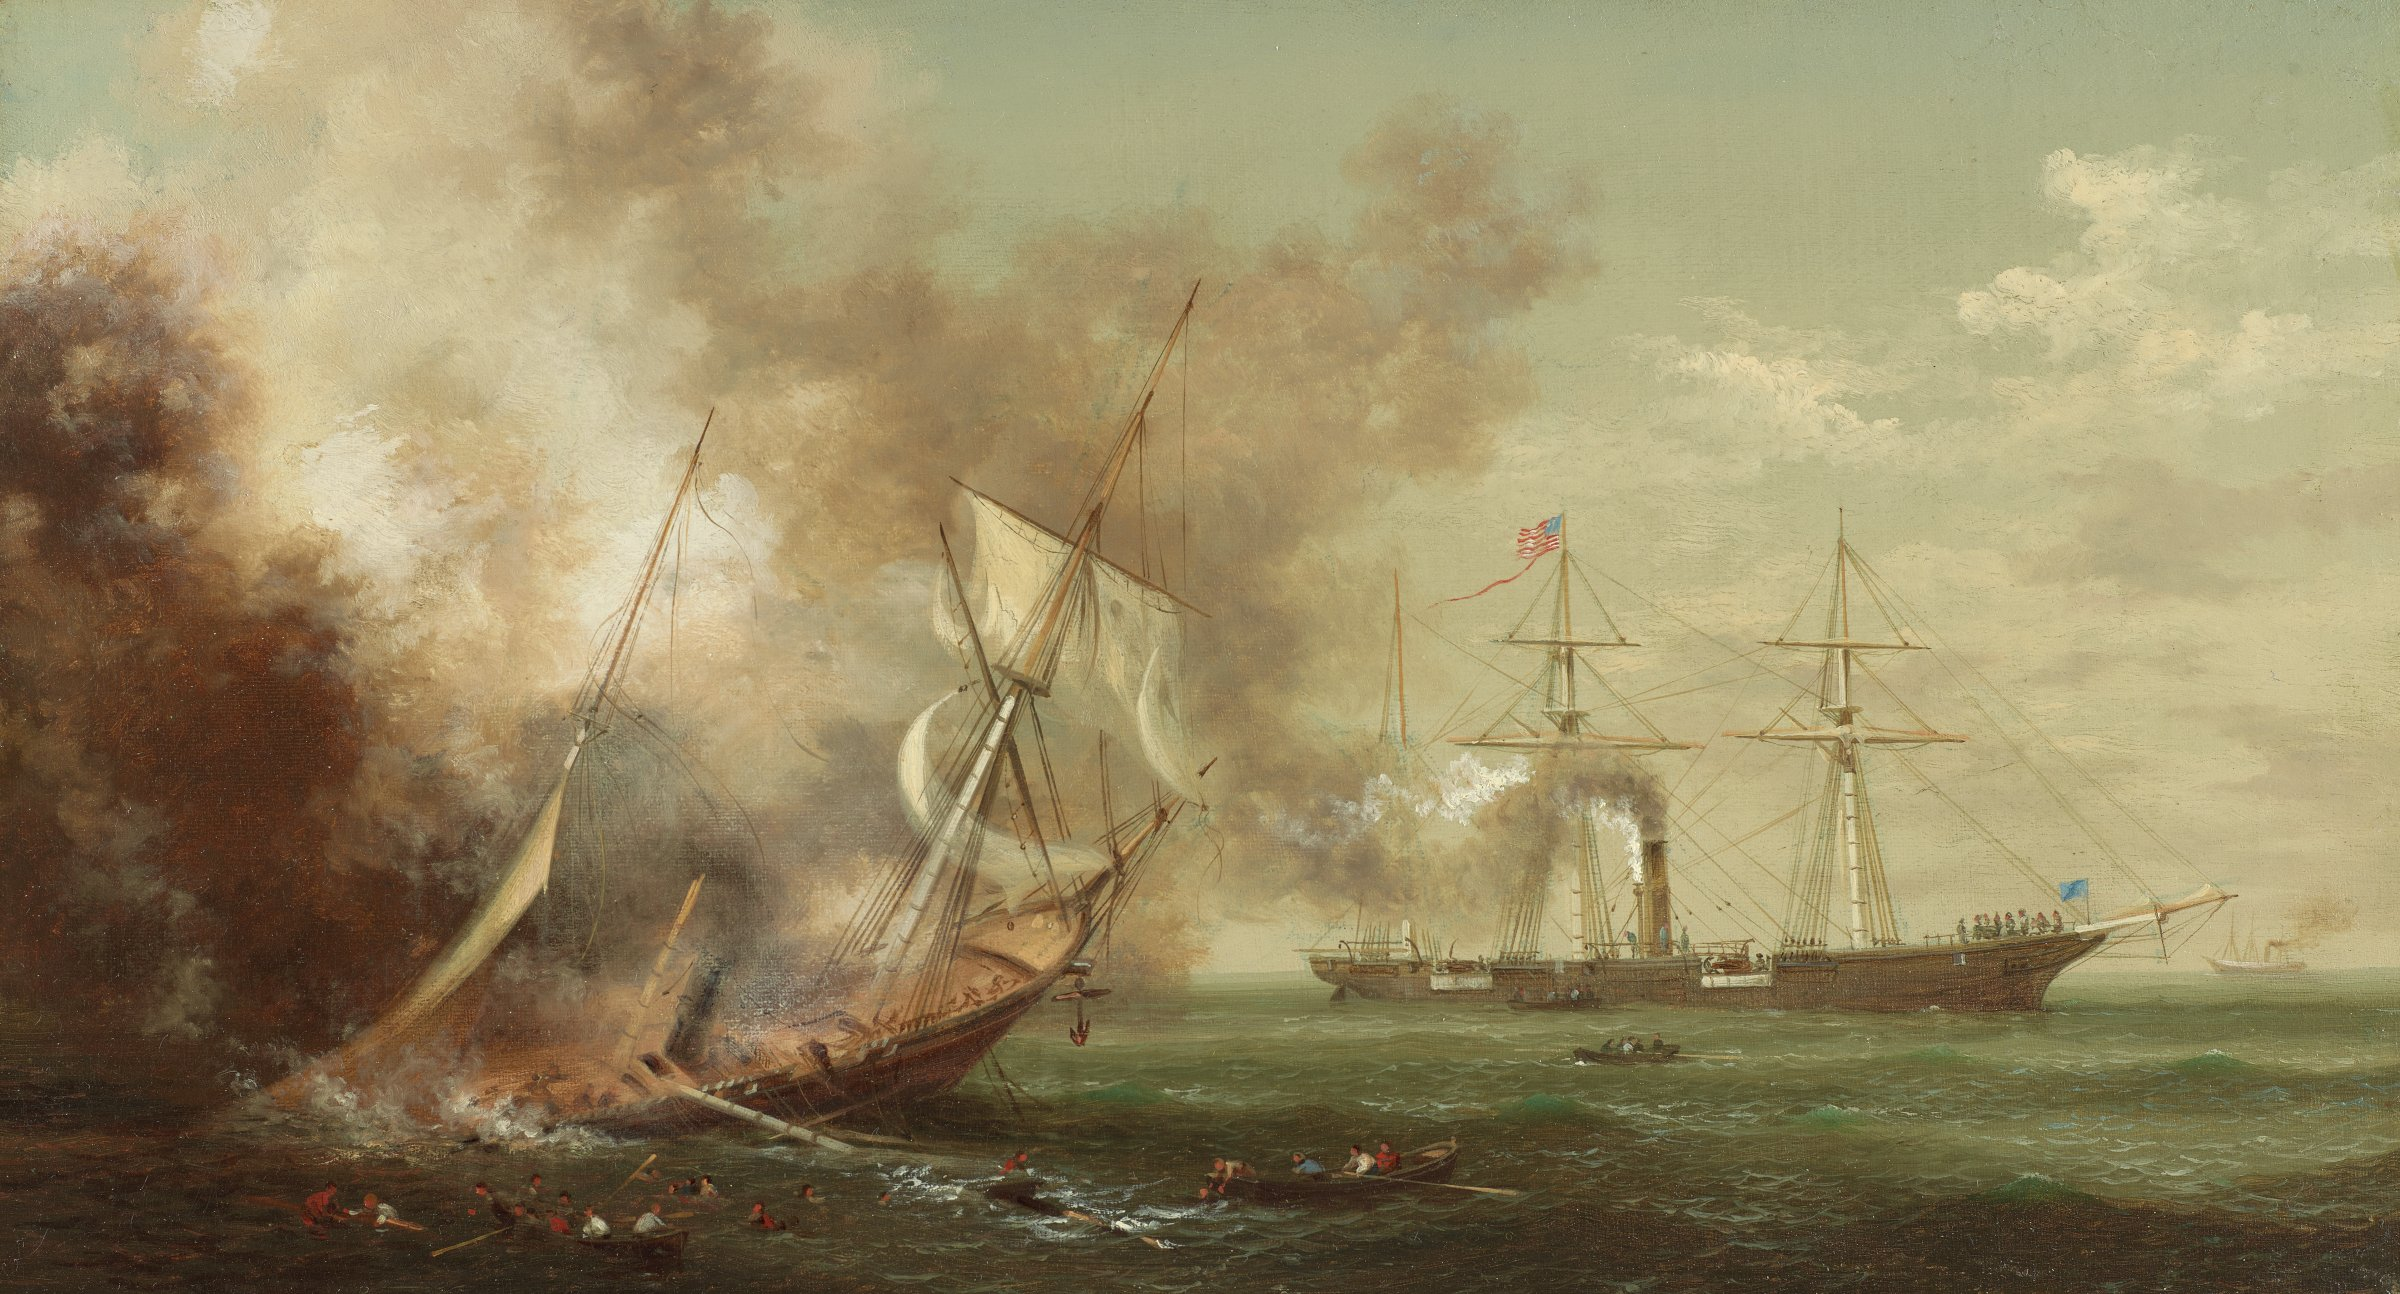 A painting of the Battle of Cherbourg, a naval engagement of the American Civil War that occurred off the coast of Cherbourg, France on June 19, 1864. In the foreground, at lower left, the CSS Alabama, a screw sloop-of-war, founders, listing to the starboard side, with its stern submerged. Confederate sailors clamor to abandon the sinking ship, which is enveloped by smoke, a reach the safety of the lifeboats. In the distance, to the right, the USS Kearsage, a Mohican-class sloop-of-war, floats parallel to the horizon line, with its starboard (proper right) side facing the viewer. White smoke issues forth from a smokestack at the center of the ship and trails left. In the foreground, blue-green water occupies the bottom quarter of the canvas, while in the background, the blue-grey sky—with black, white and grey smoke at right and scattered white clouds at left—covers the remaining three-quarters of the canvas.